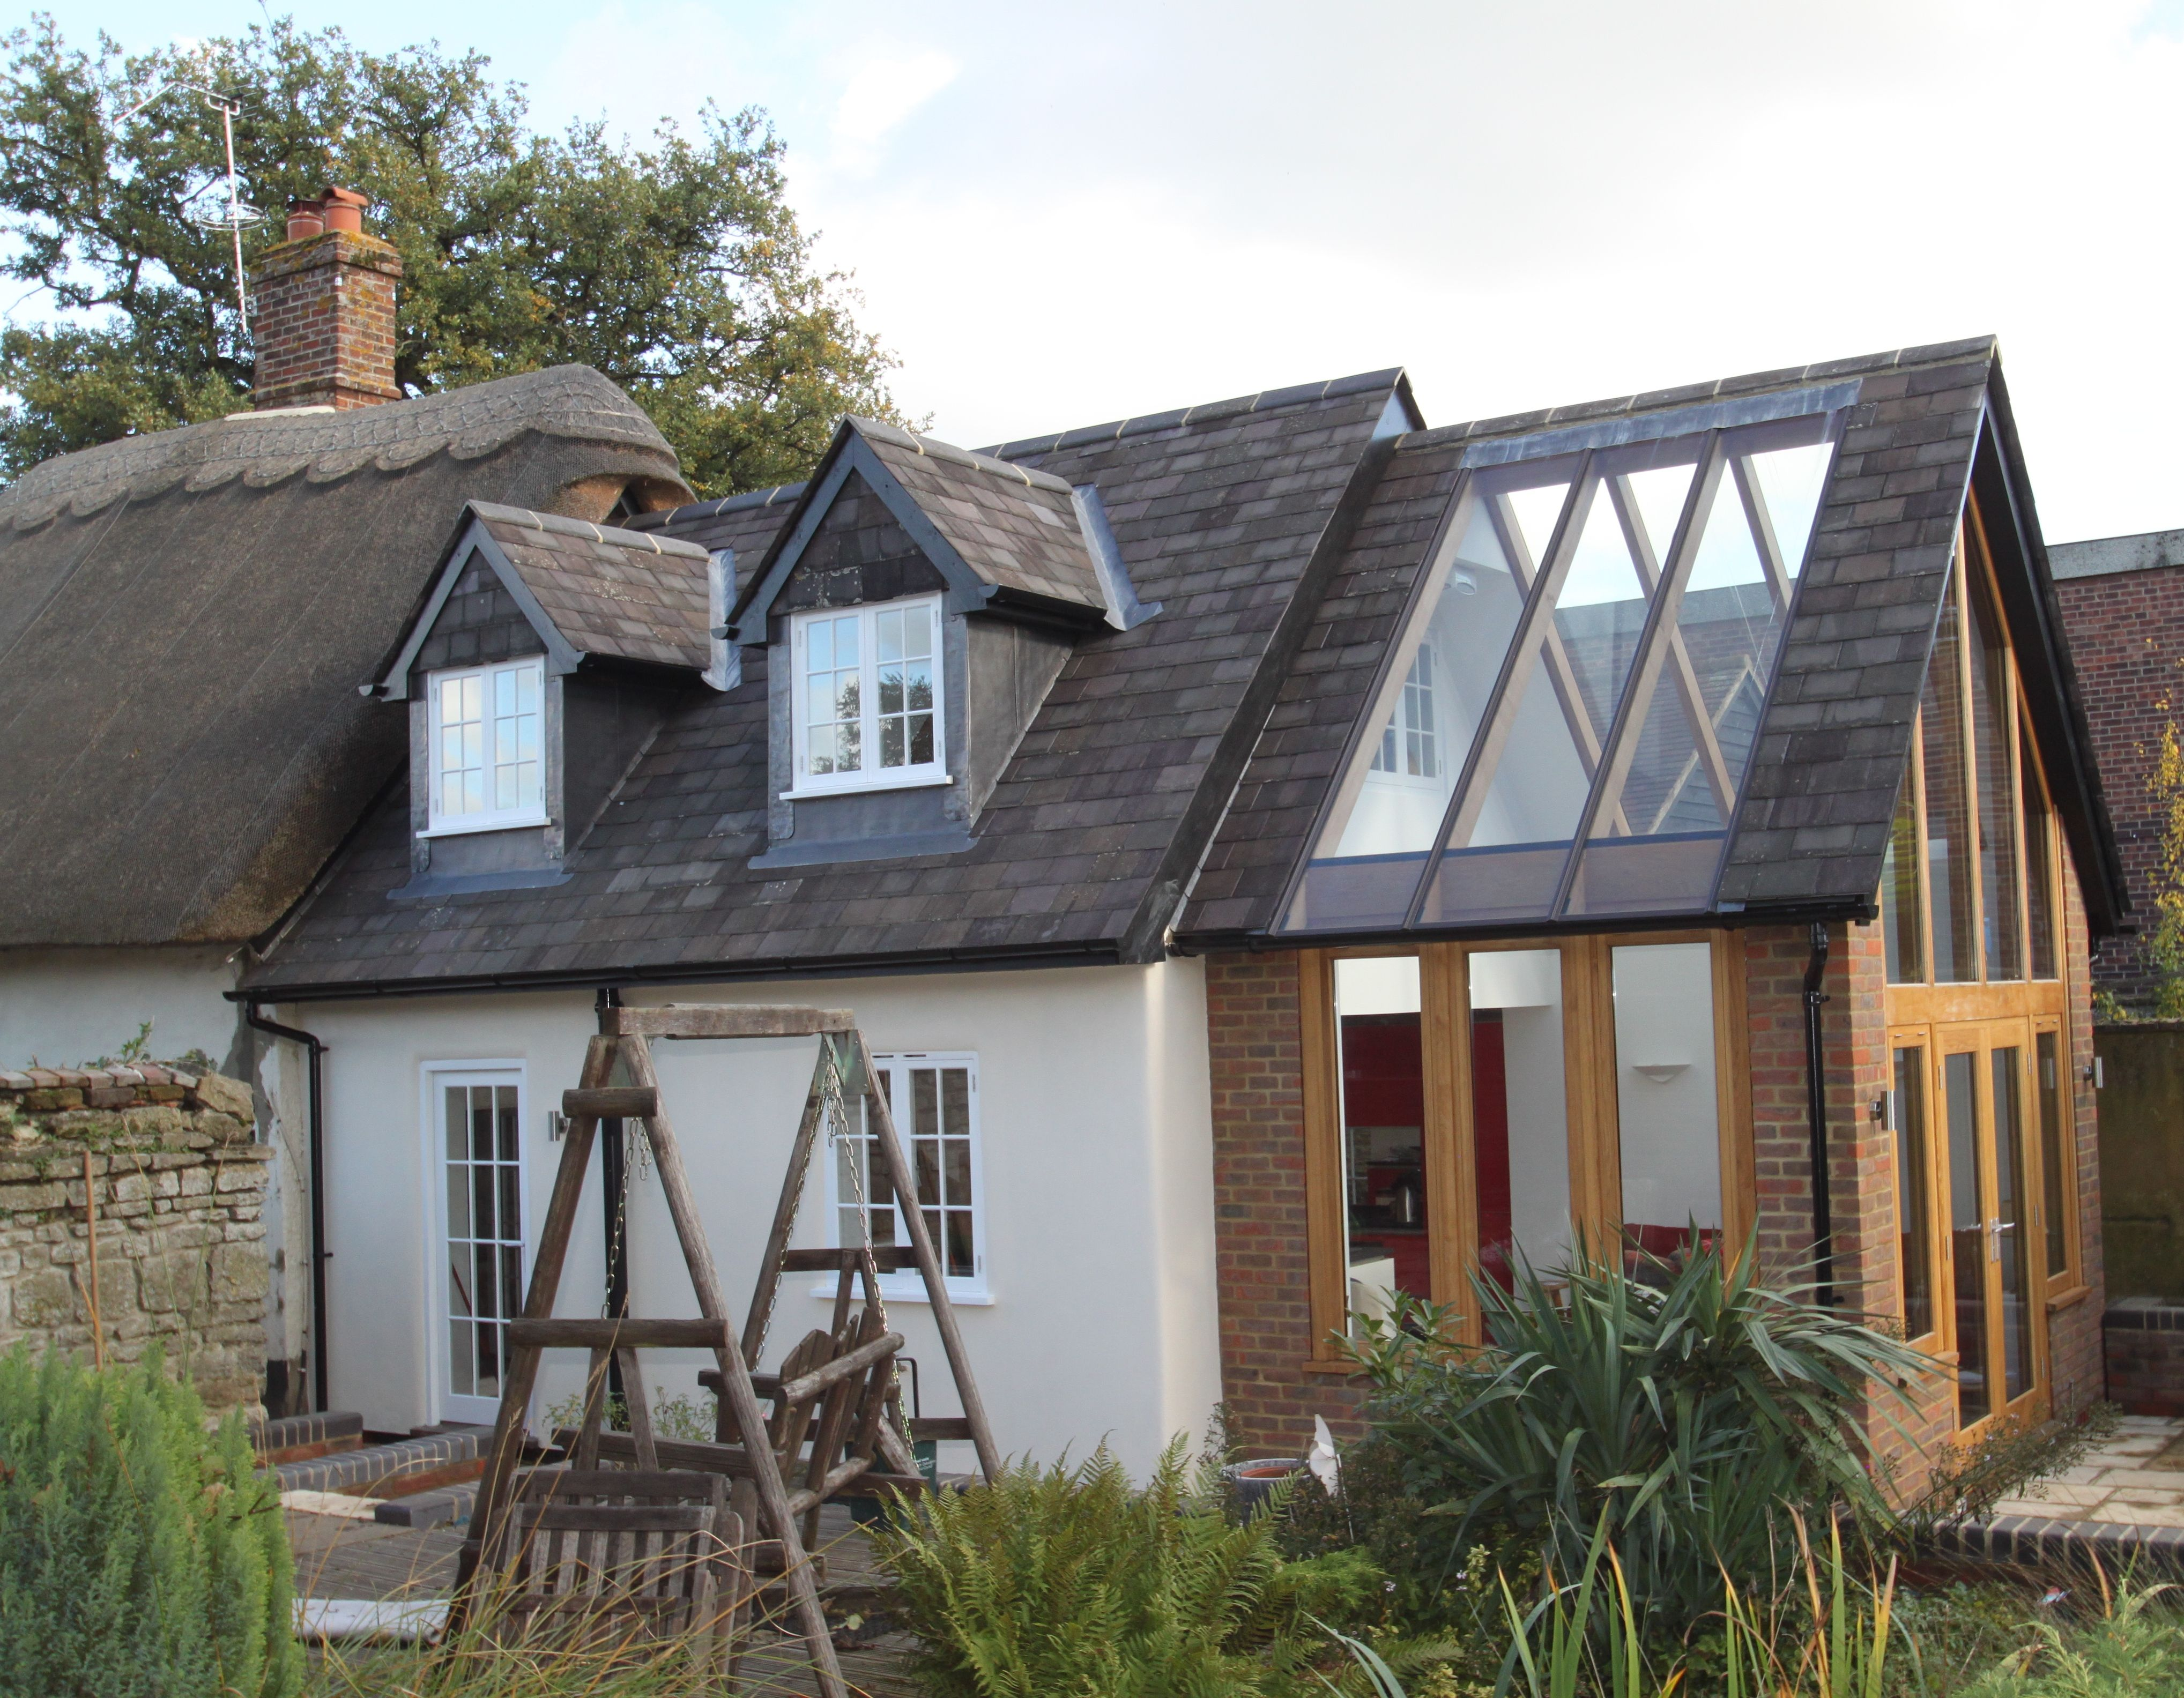 Work Has Just Been Completed On An Existing Rear Extension